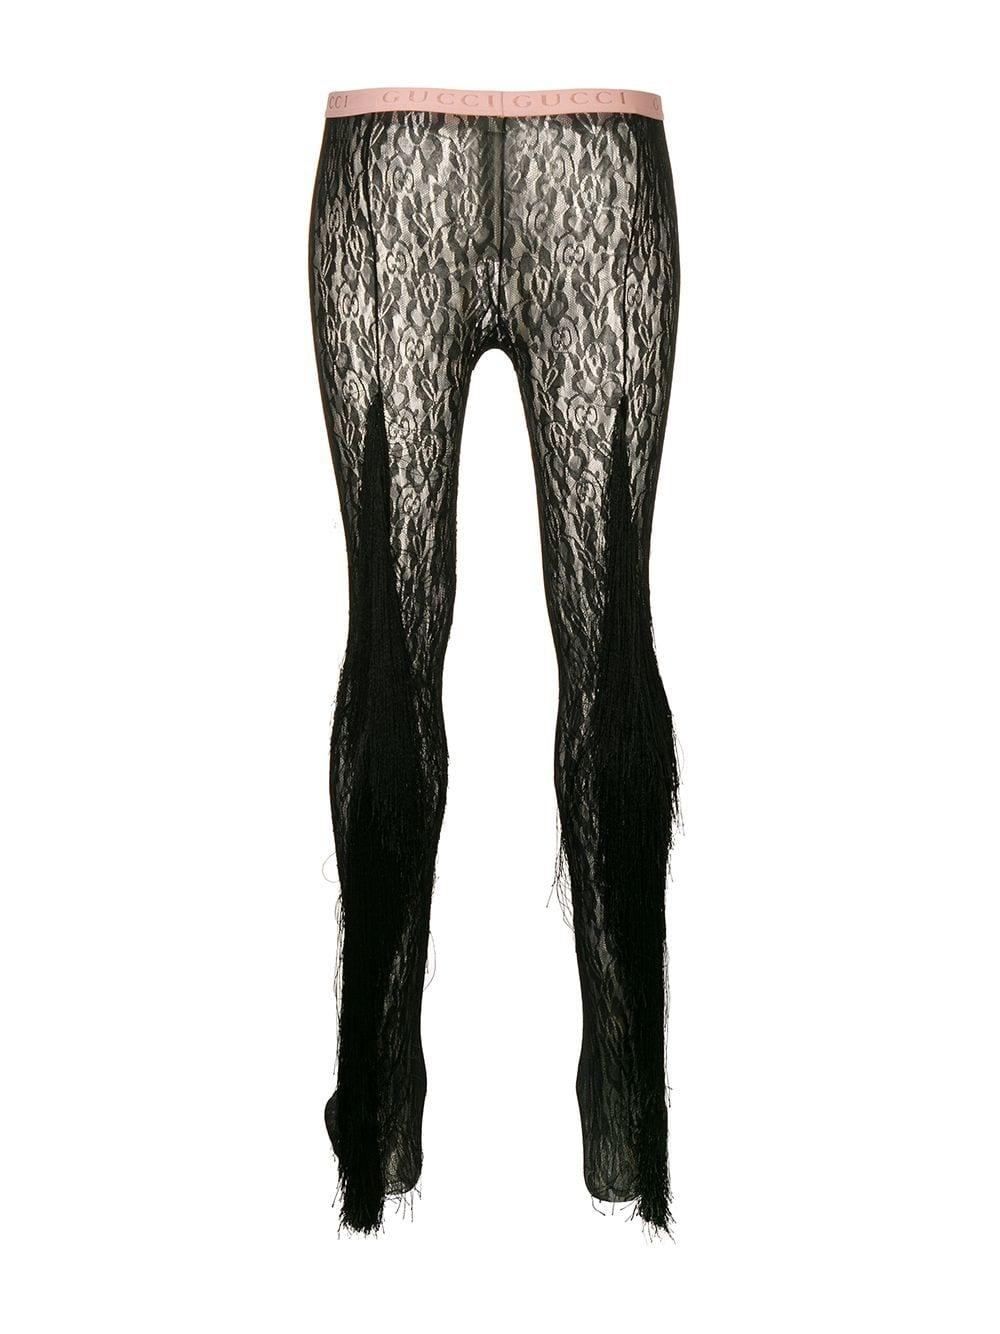 91ef3c9cf Gucci Fringed Floral Lace Tights in Black - Lyst